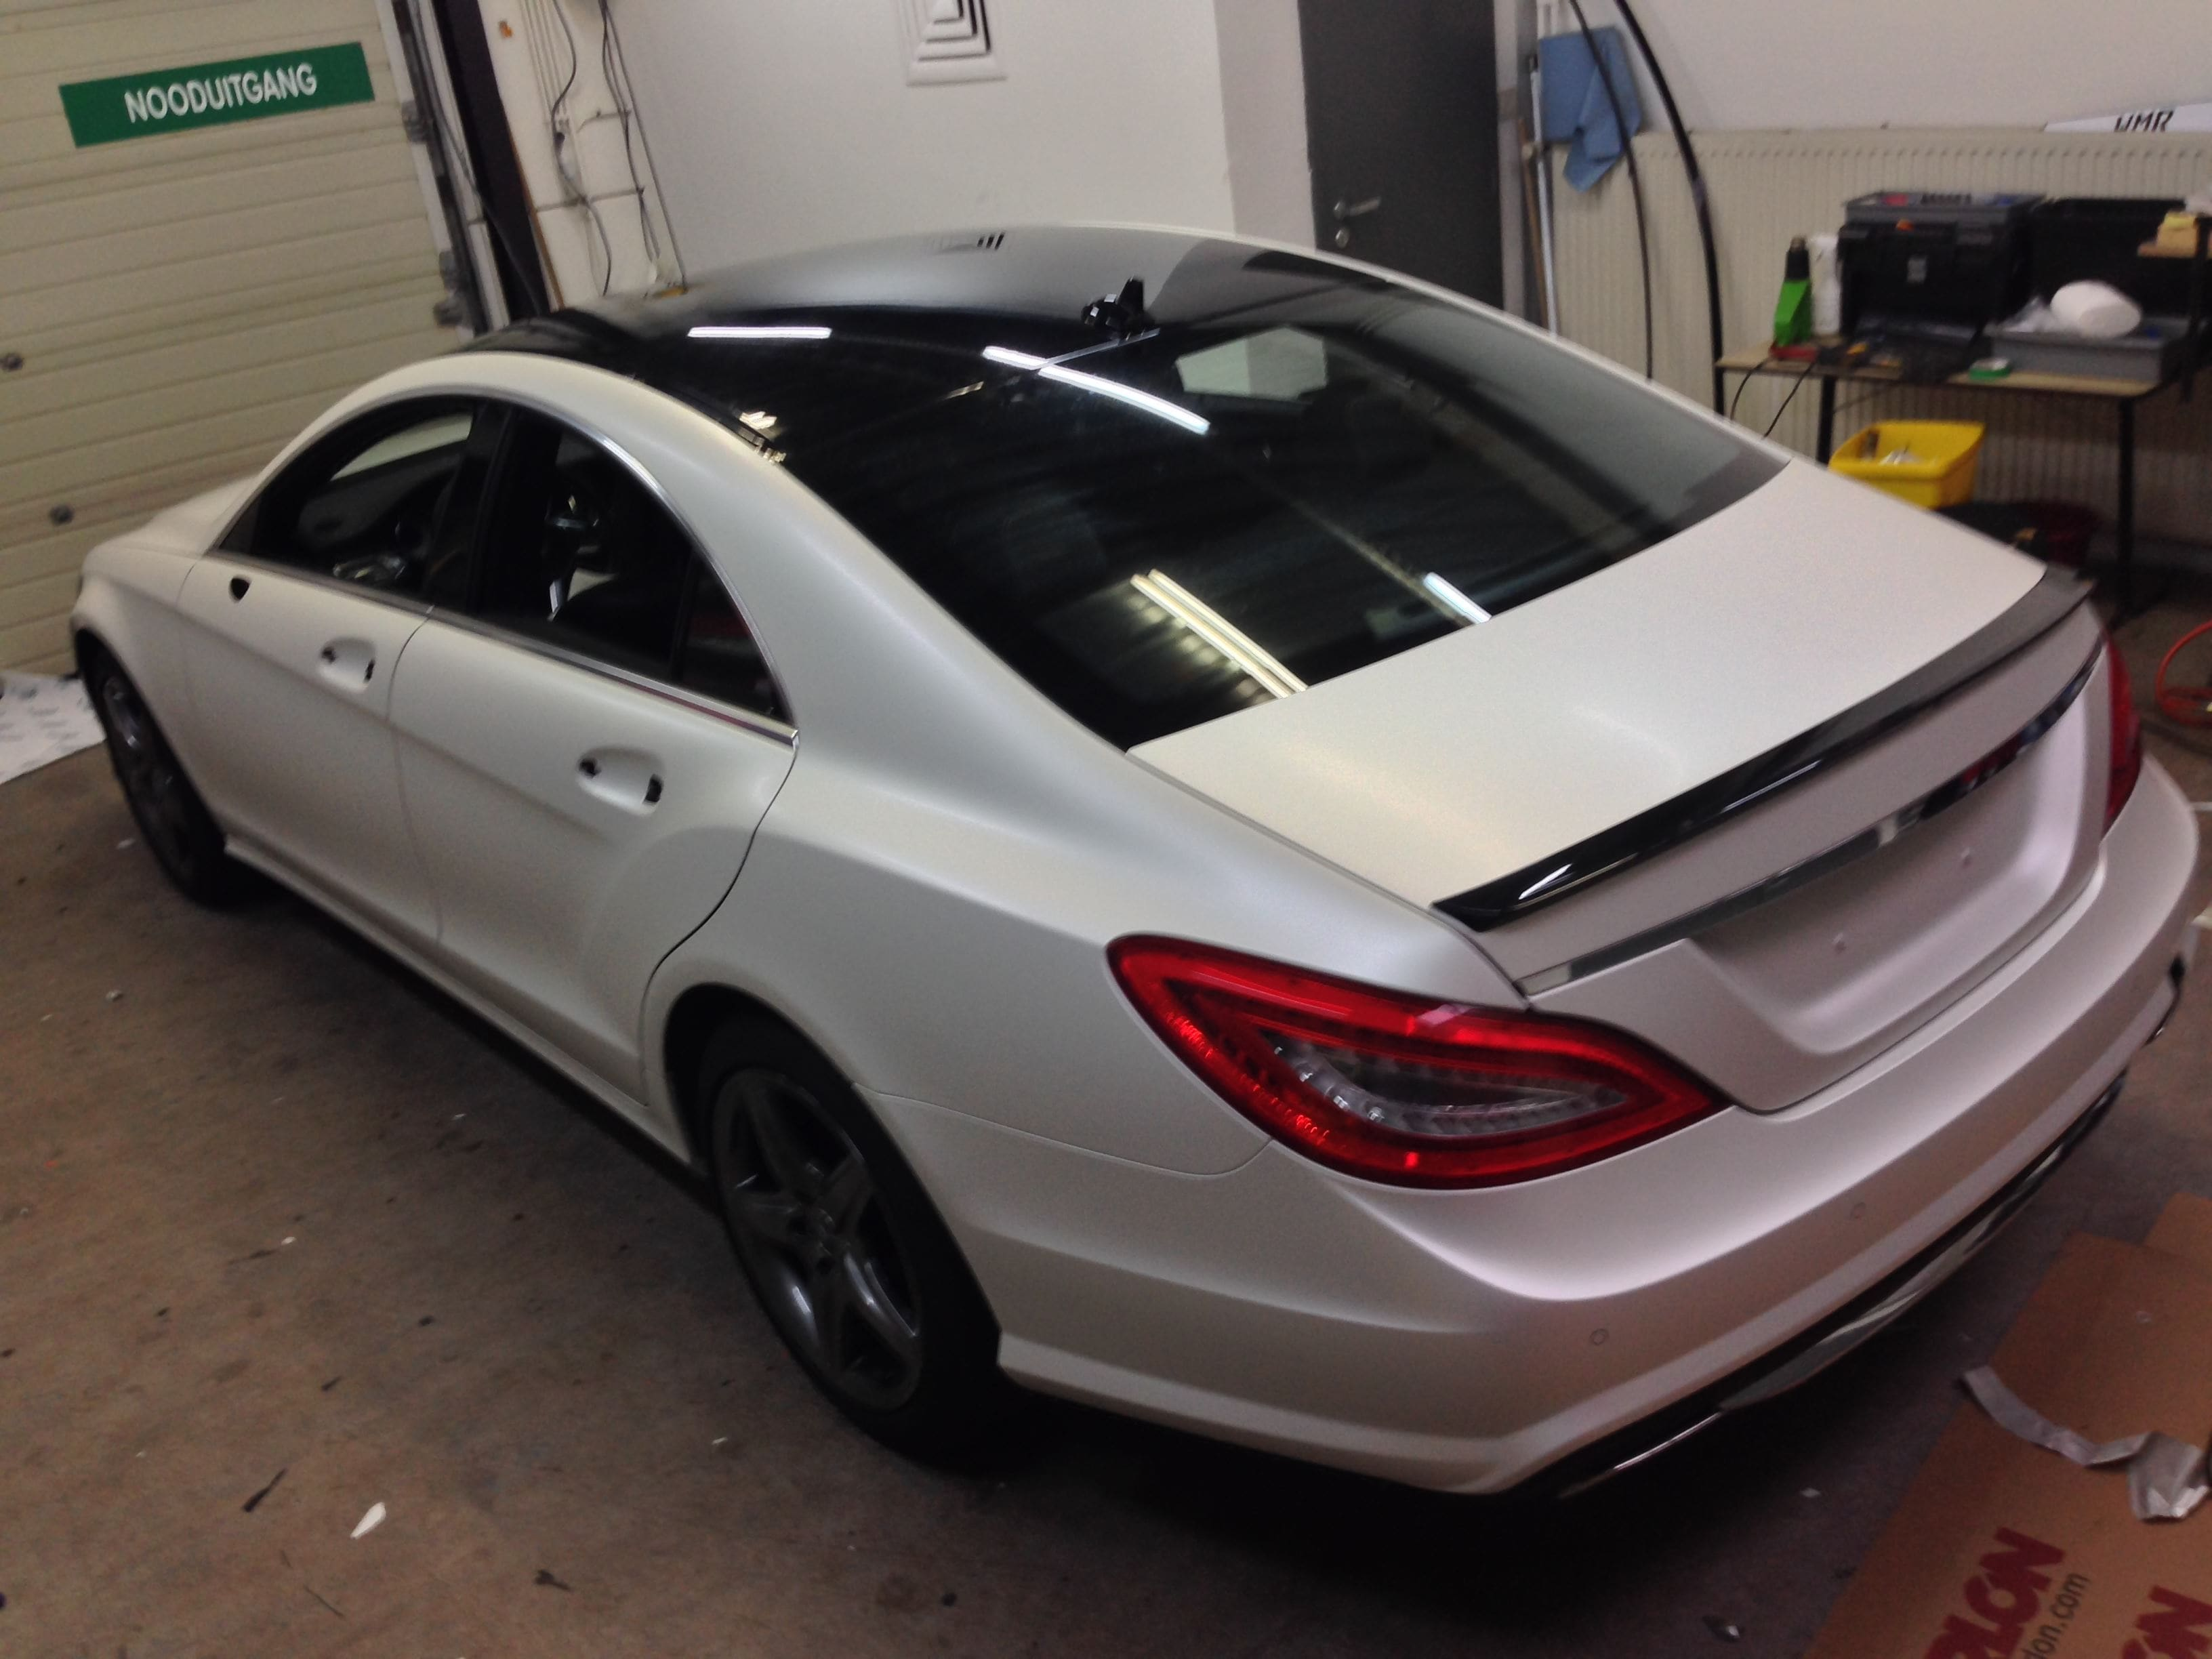 Mercedes CLS met White Satin Pearl Wrap, Carwrapping door Wrapmyride.nu Foto-nr:6182, ©2020